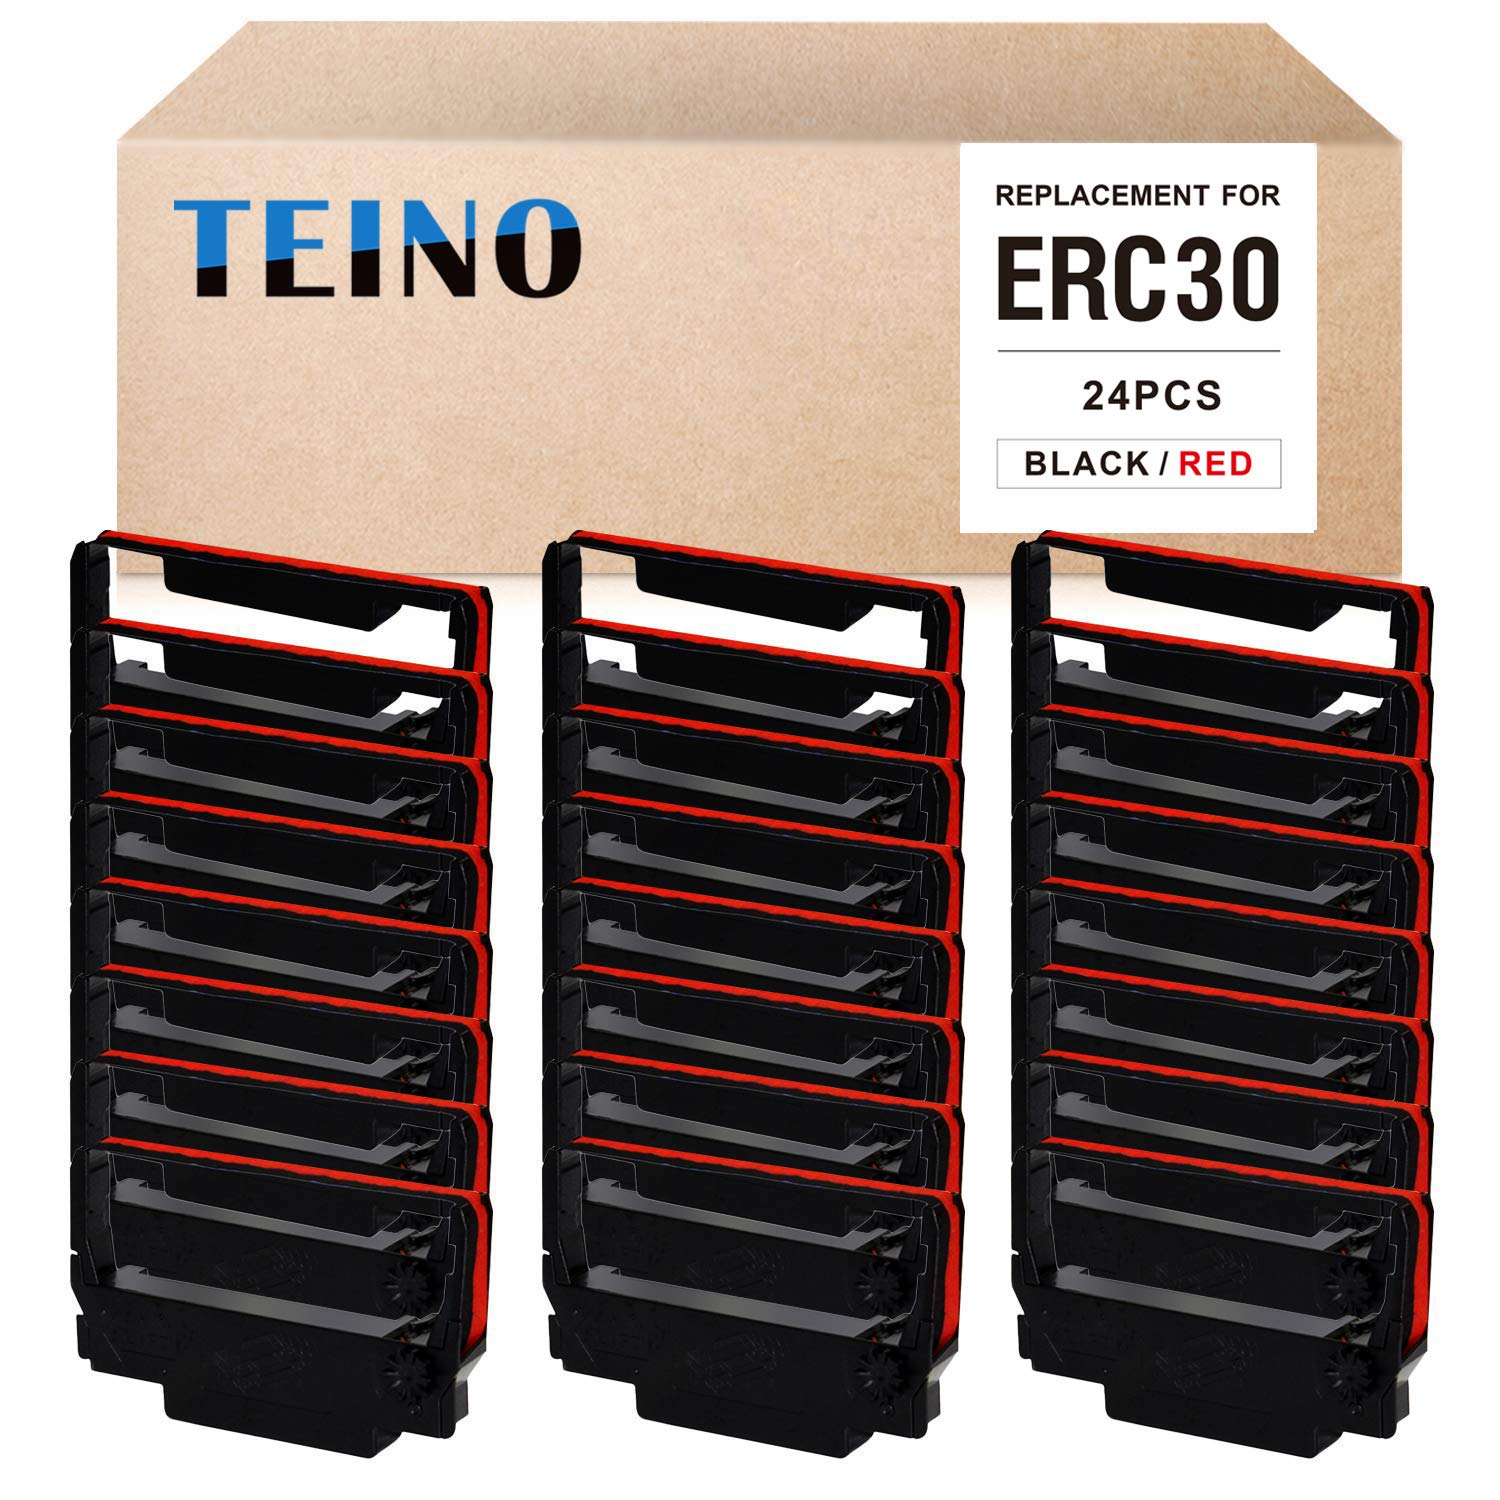 TEINO 24 Pack ERC30 ERC-30 ERC 30 34 38 B/R Compatible Ribbon Cartridge for use in ERC38 NK506 (Black Red) by TEINO